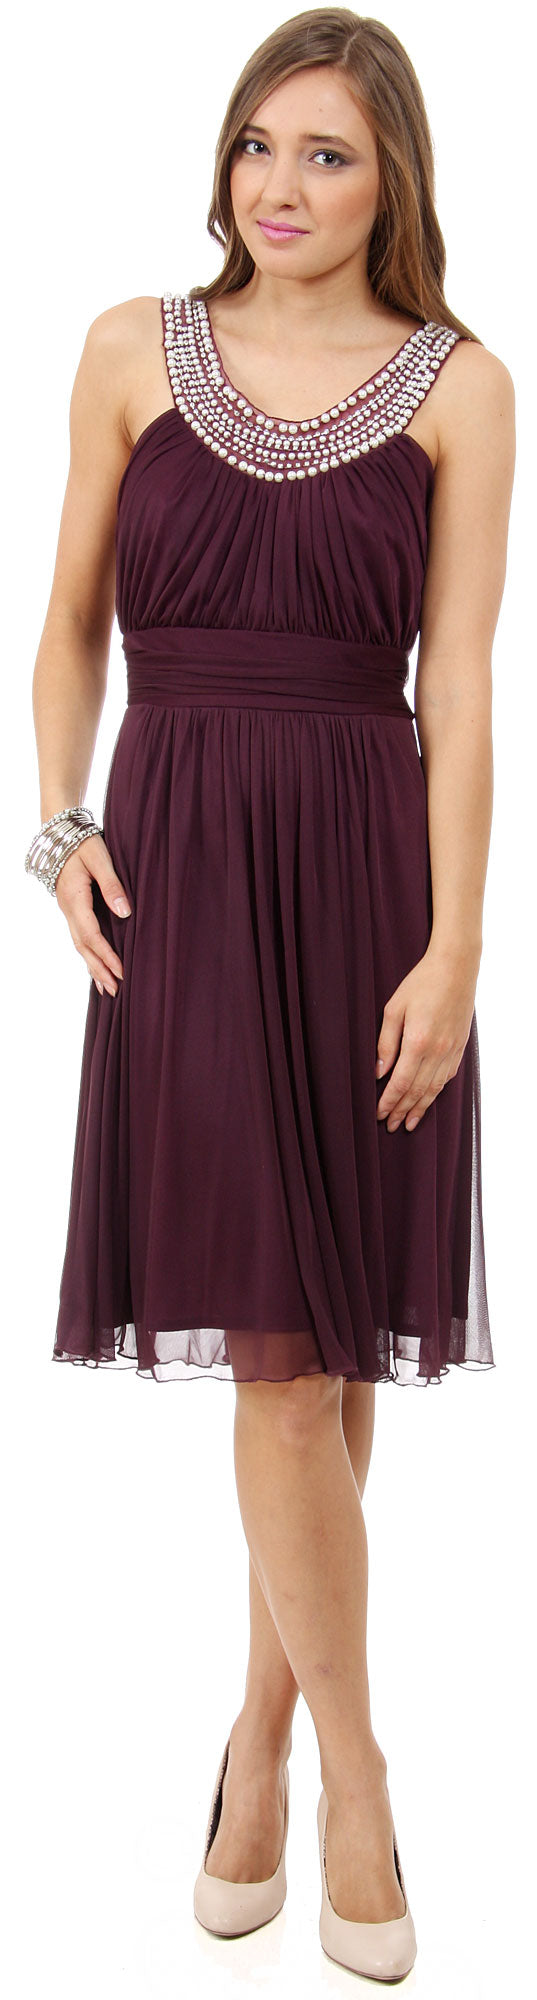 Image of U-neck Short Party Dress With Pearls & Diamond Accent in Plum